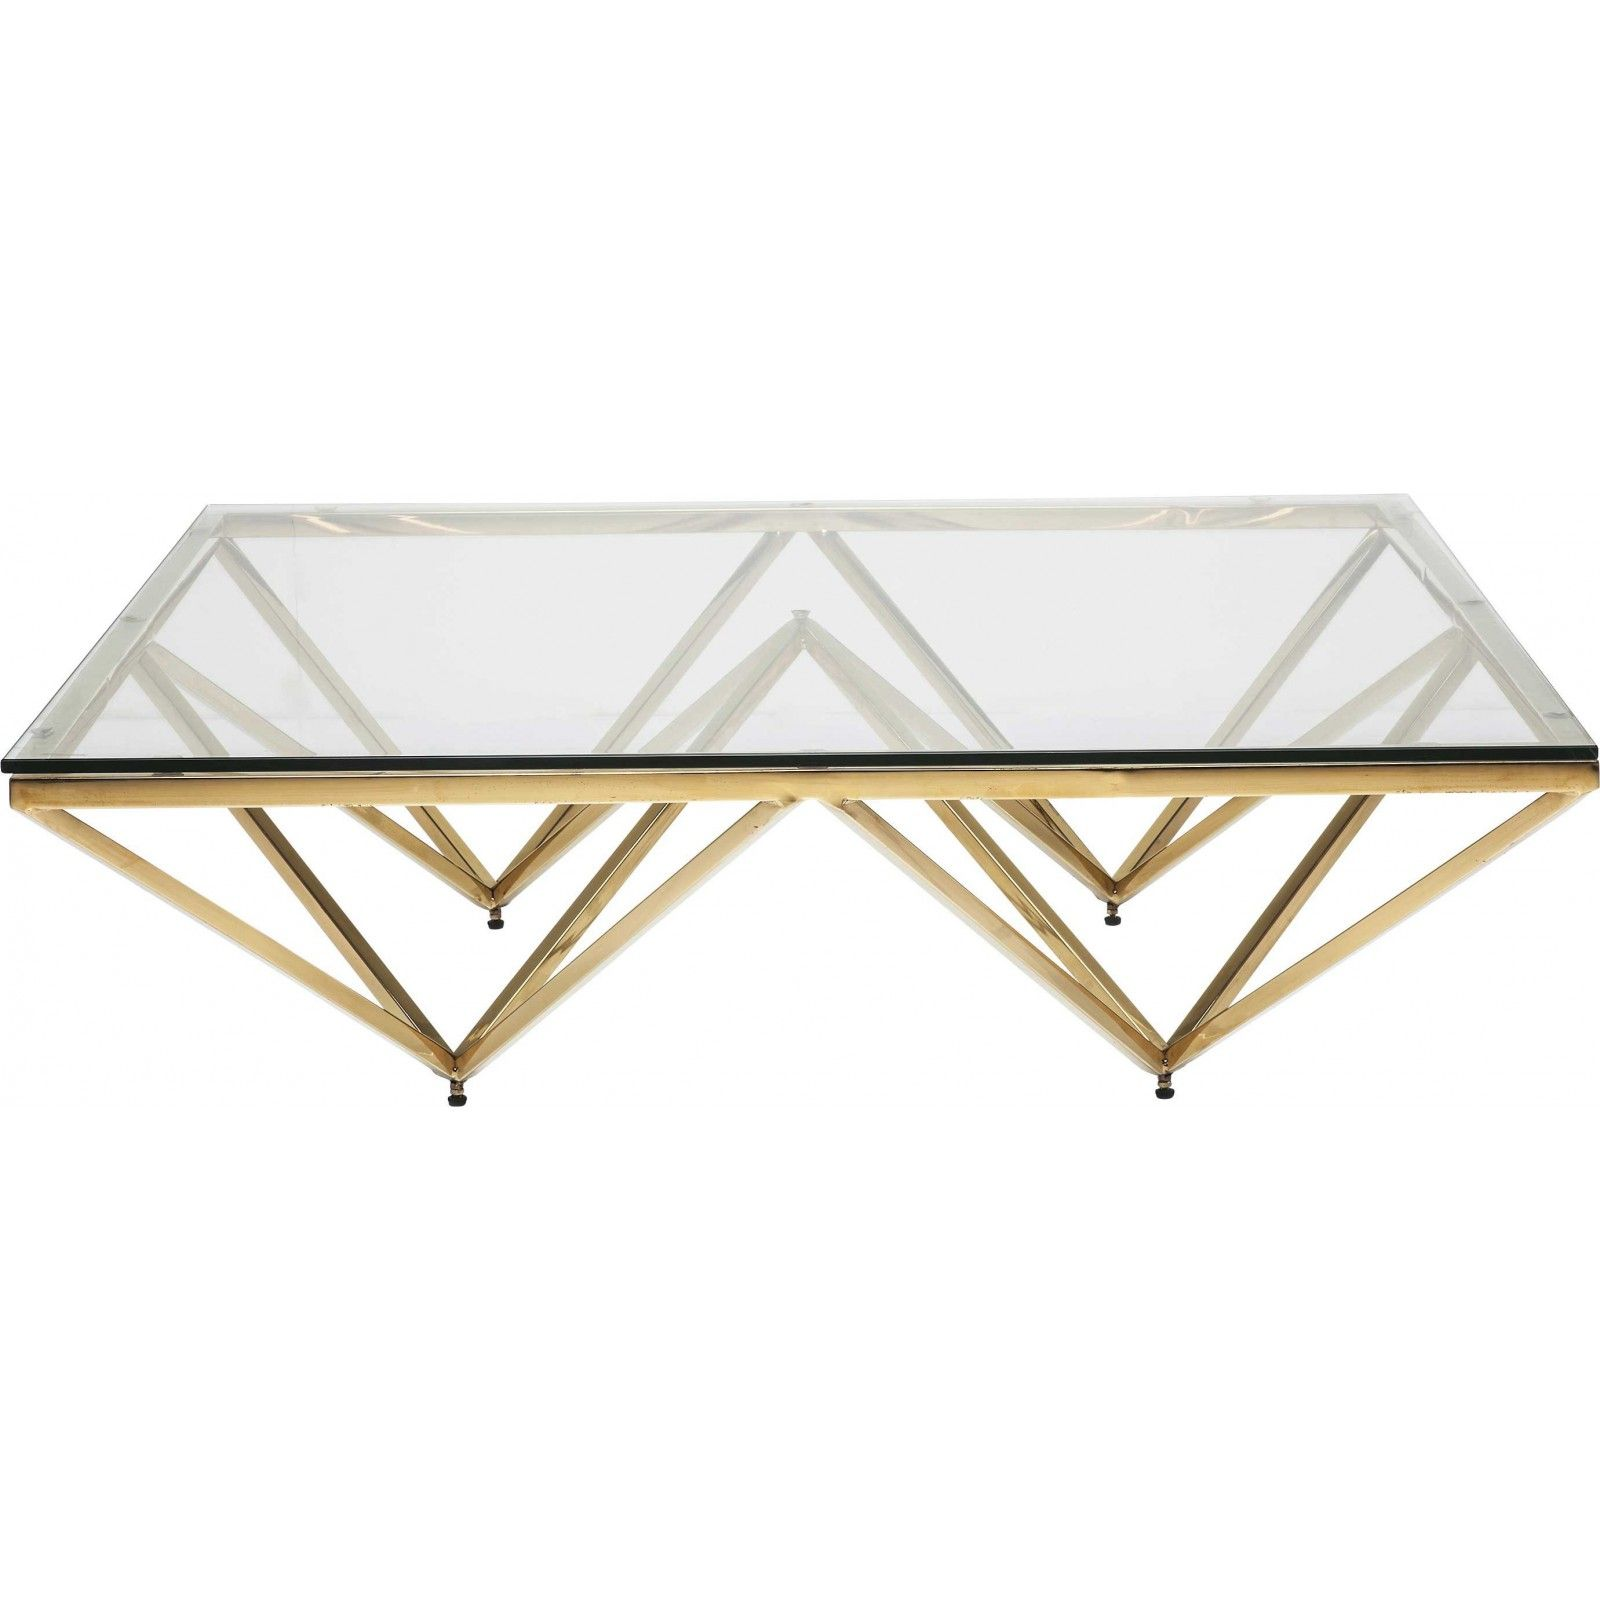 Table Basse Contemporaine Dore Network Kare Design Table Basse Verre Table Basse Carree En Verre Table Basse